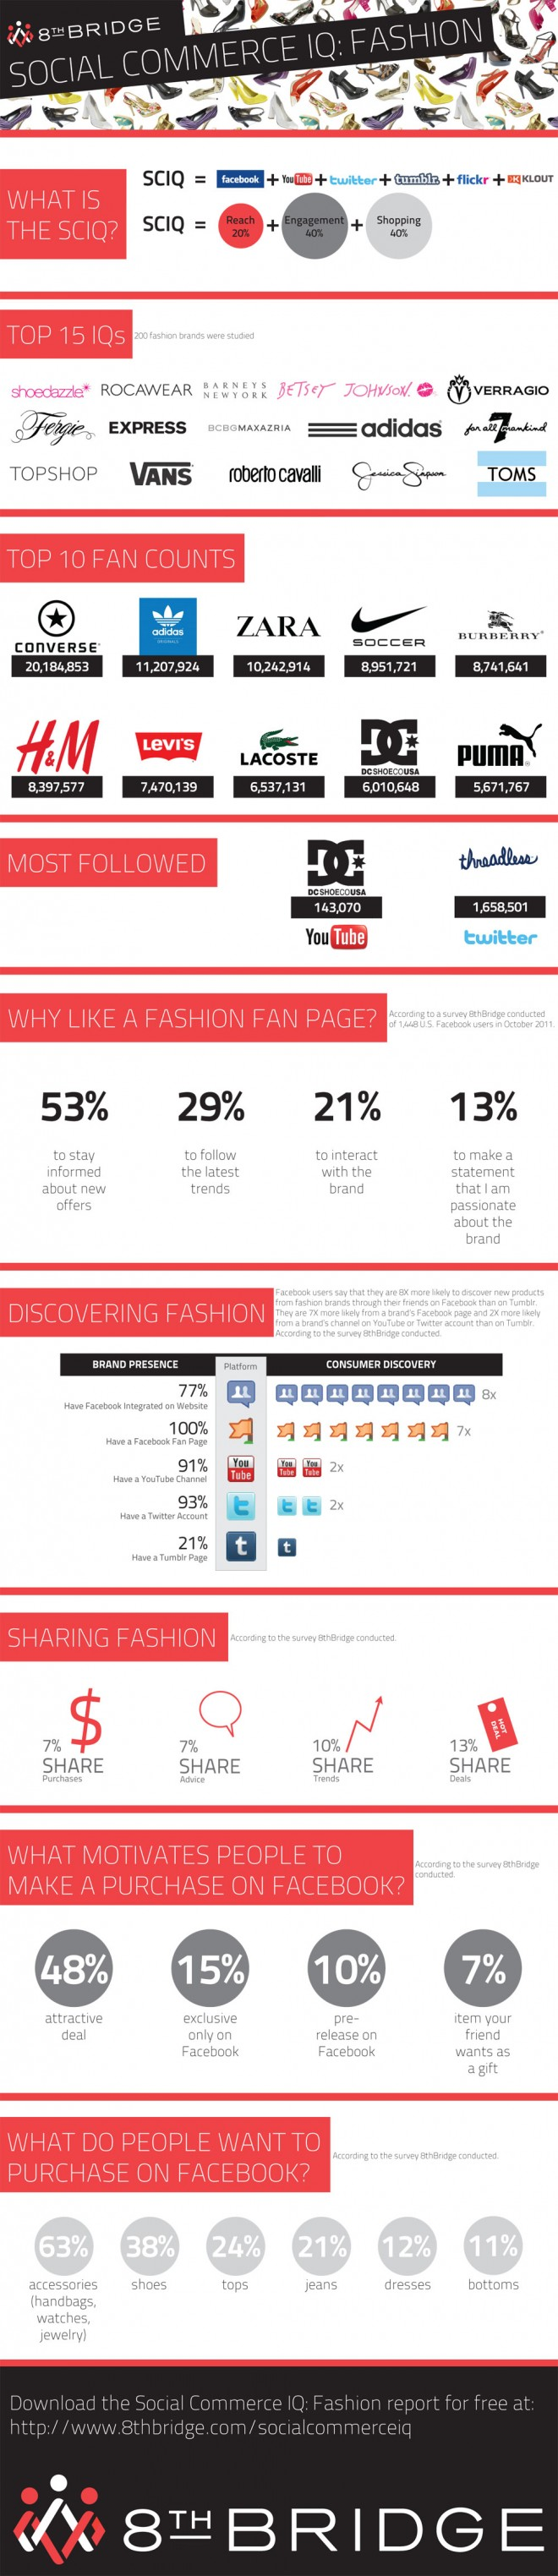 Fashion Brands in Social Media